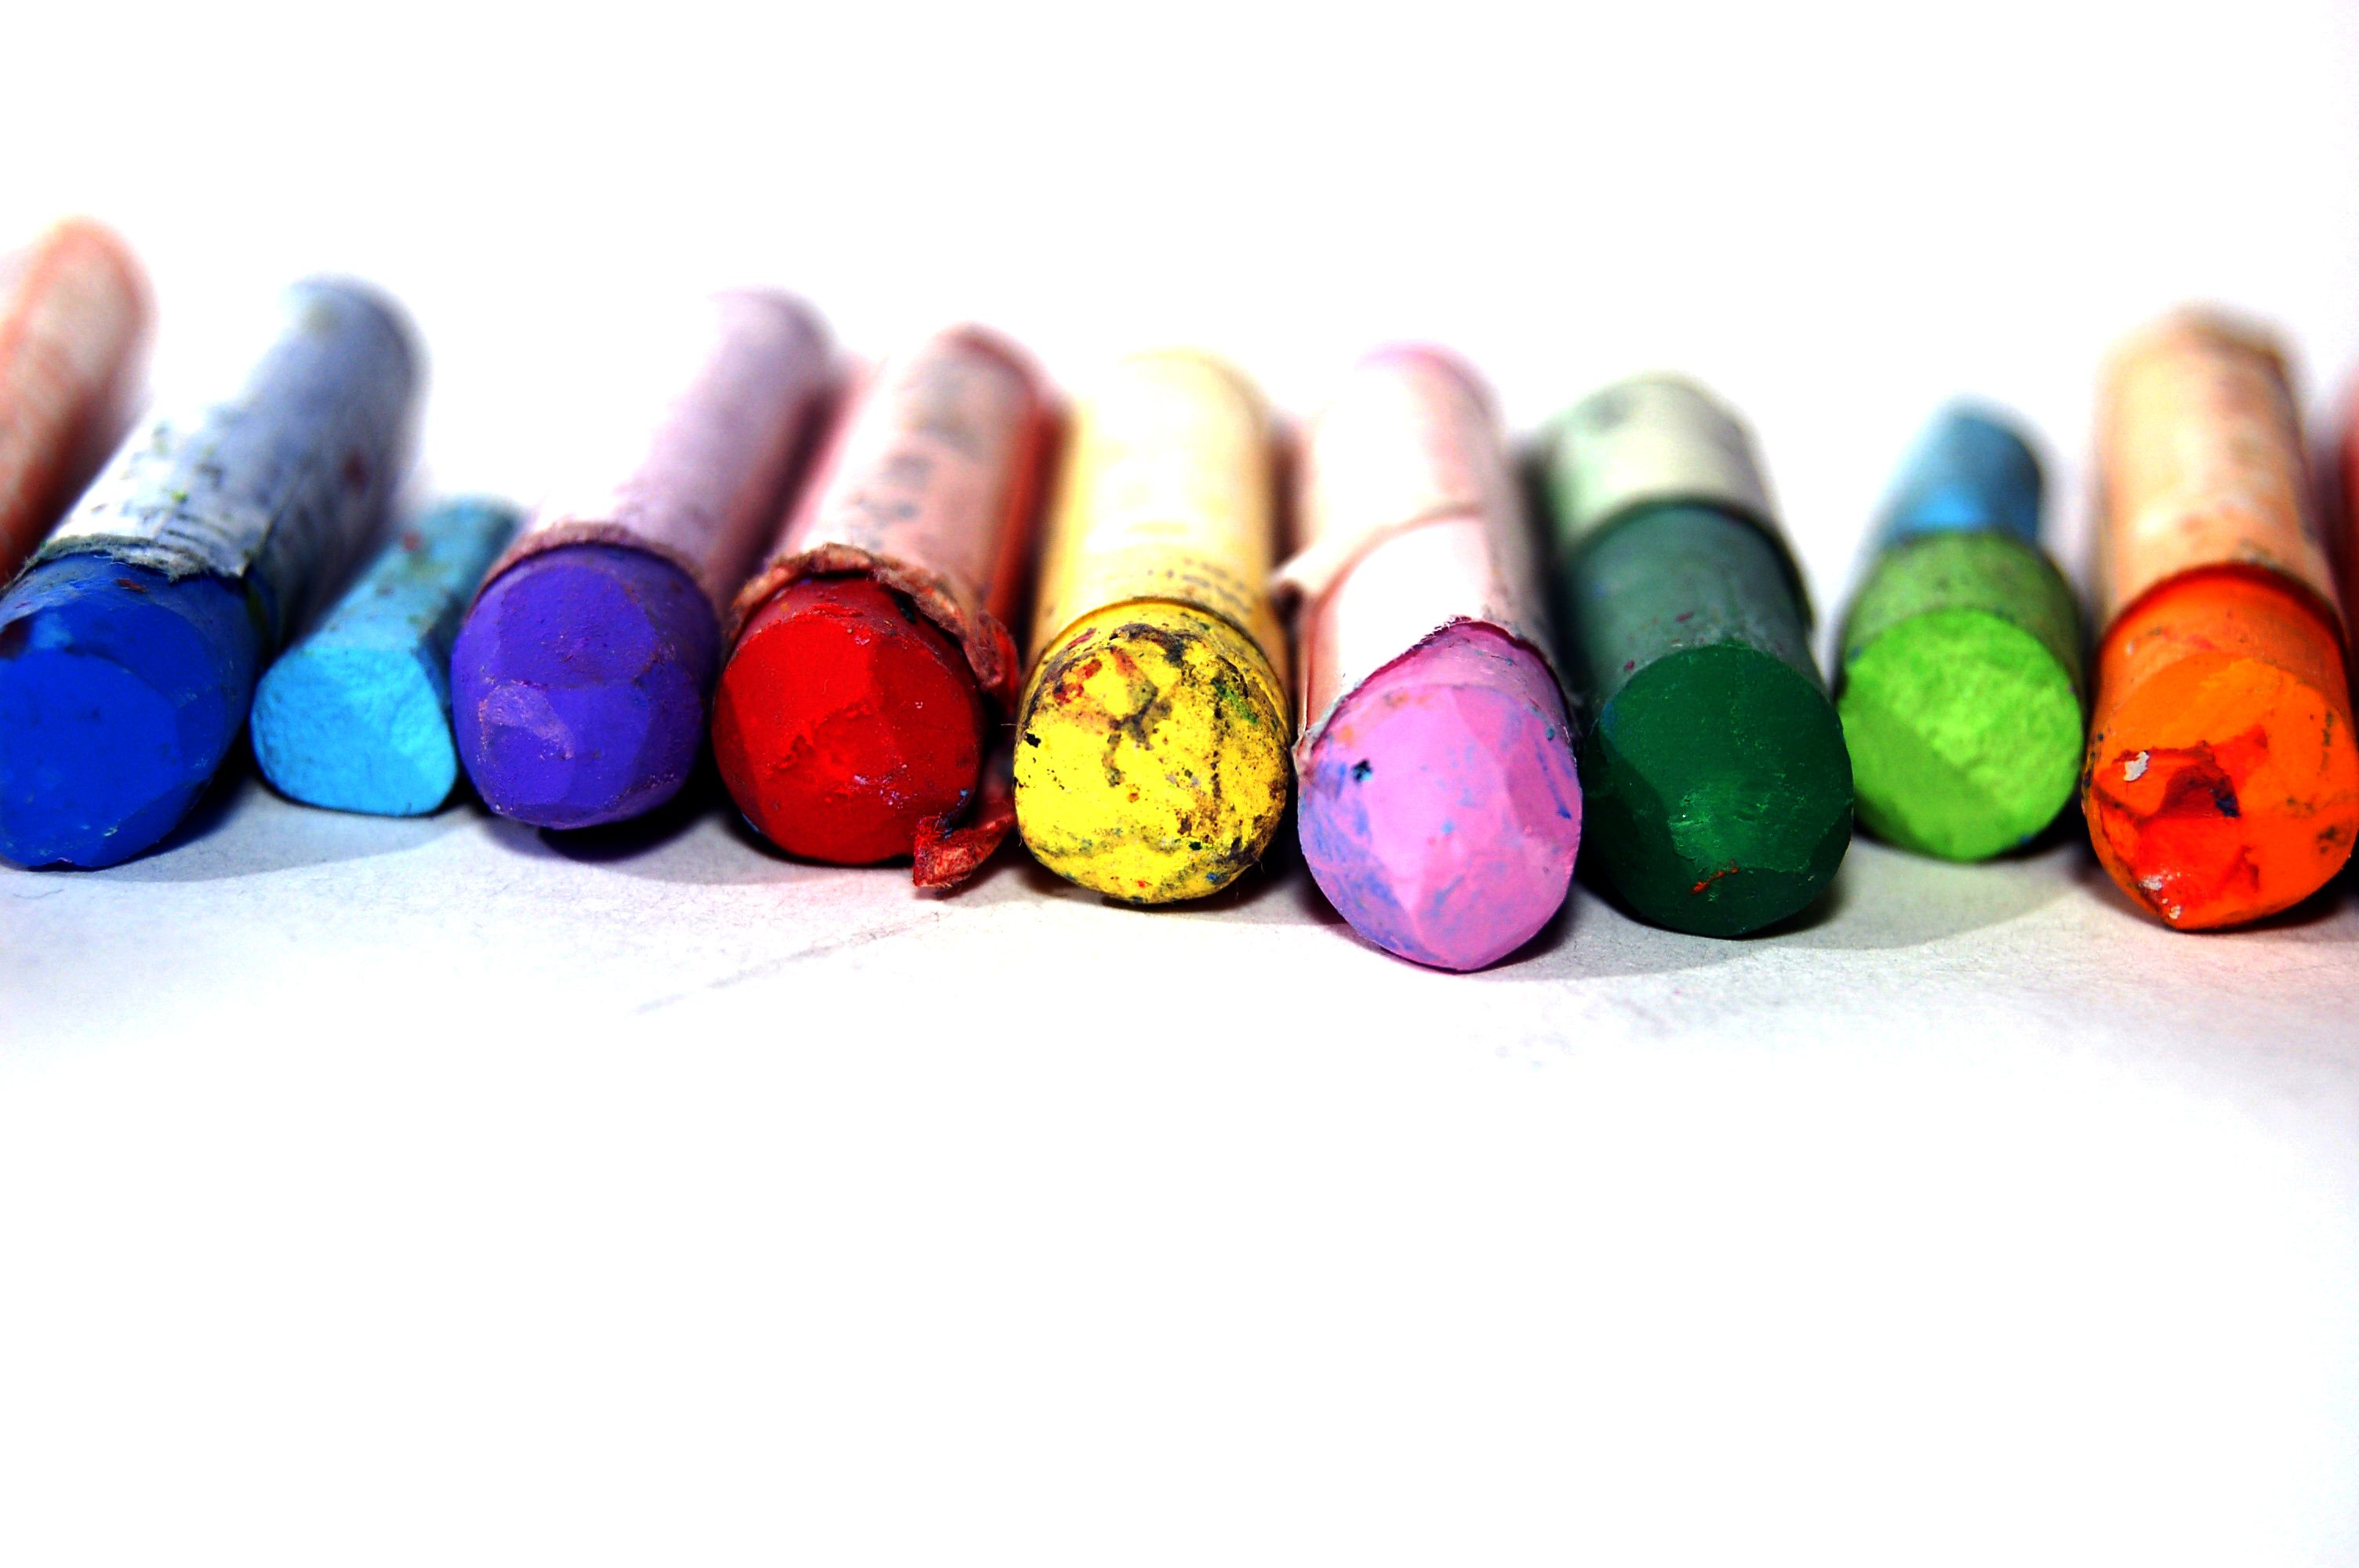 3008x2000 Crayons Wallpapers High Quality | Download Free